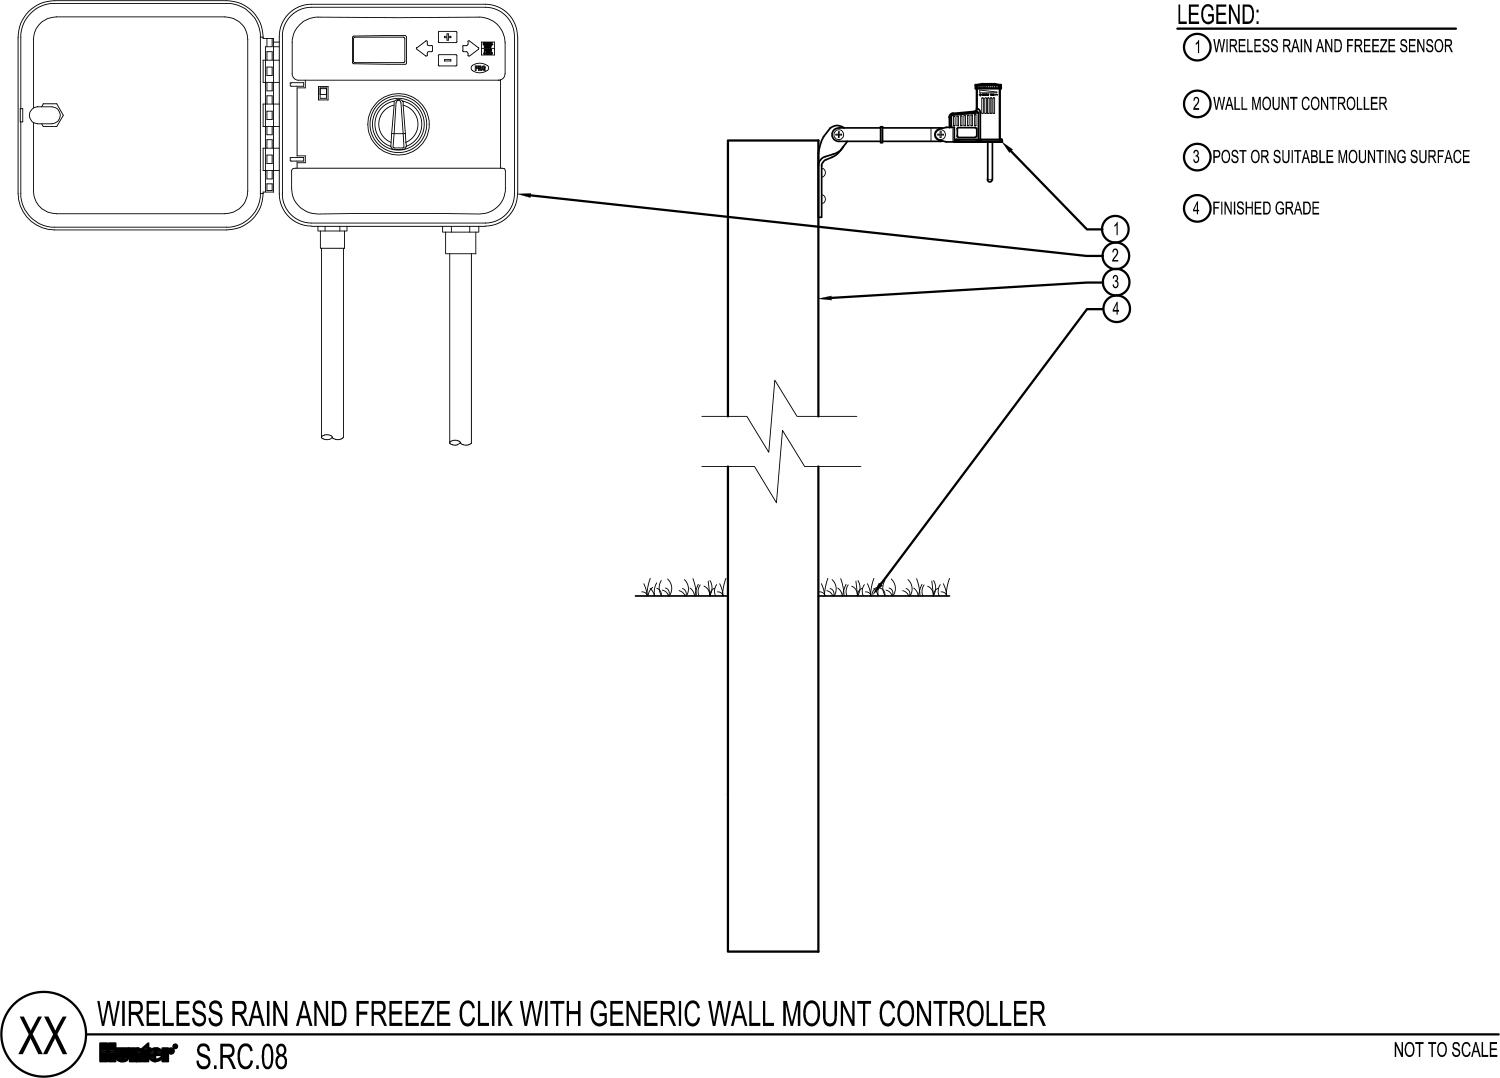 CAD - Wireless Rain Freeze Clik with Generic Wall Mount Controller